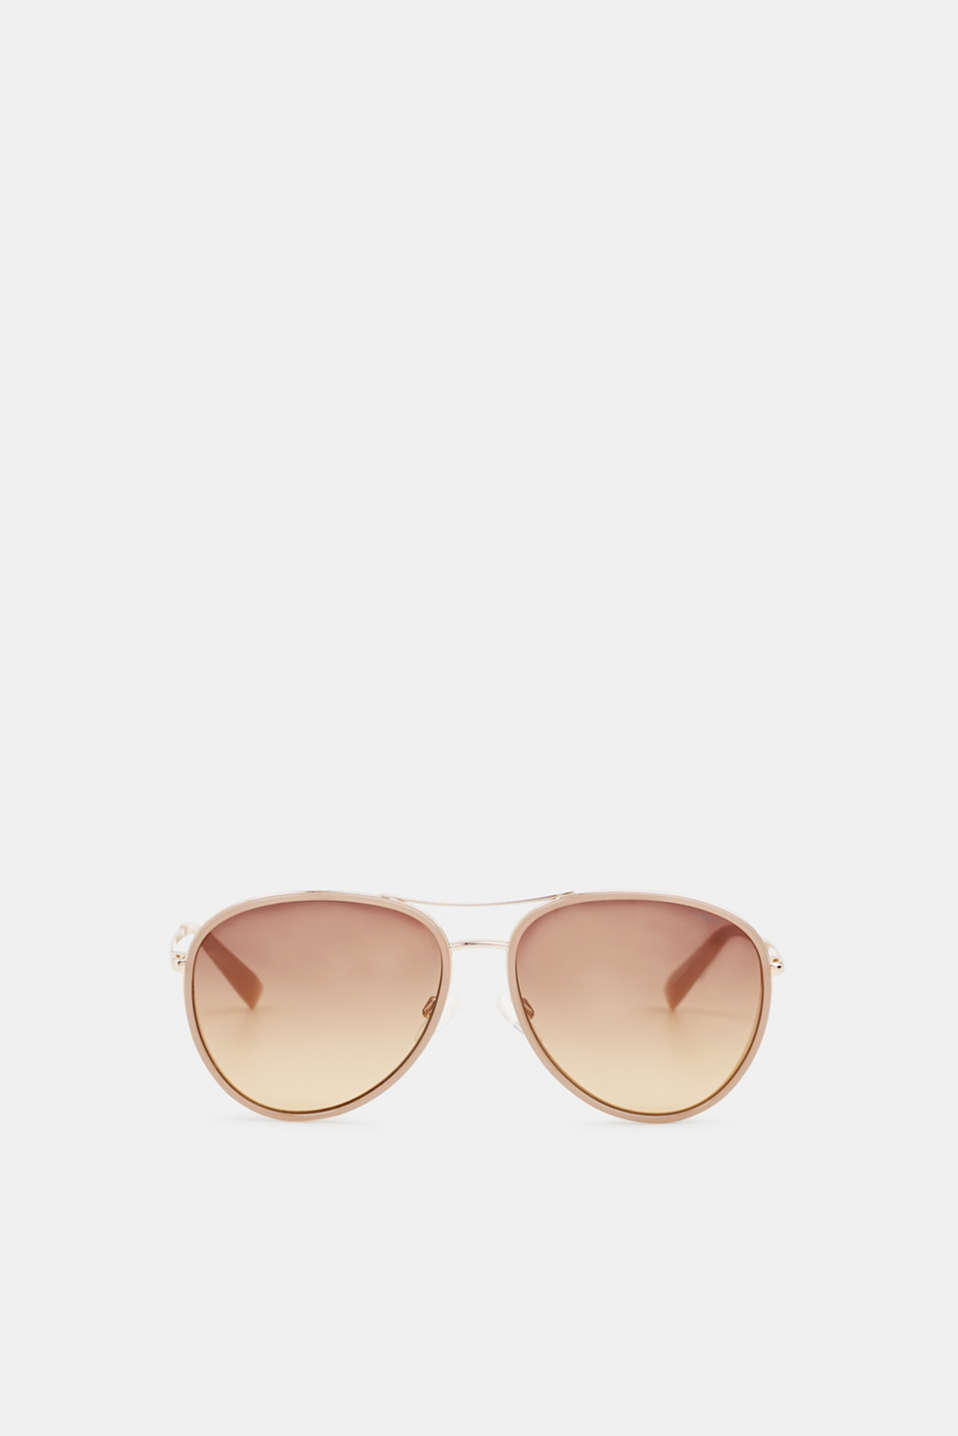 Unisex sunglasses with widened metal frames, LCBROWN, detail image number 0